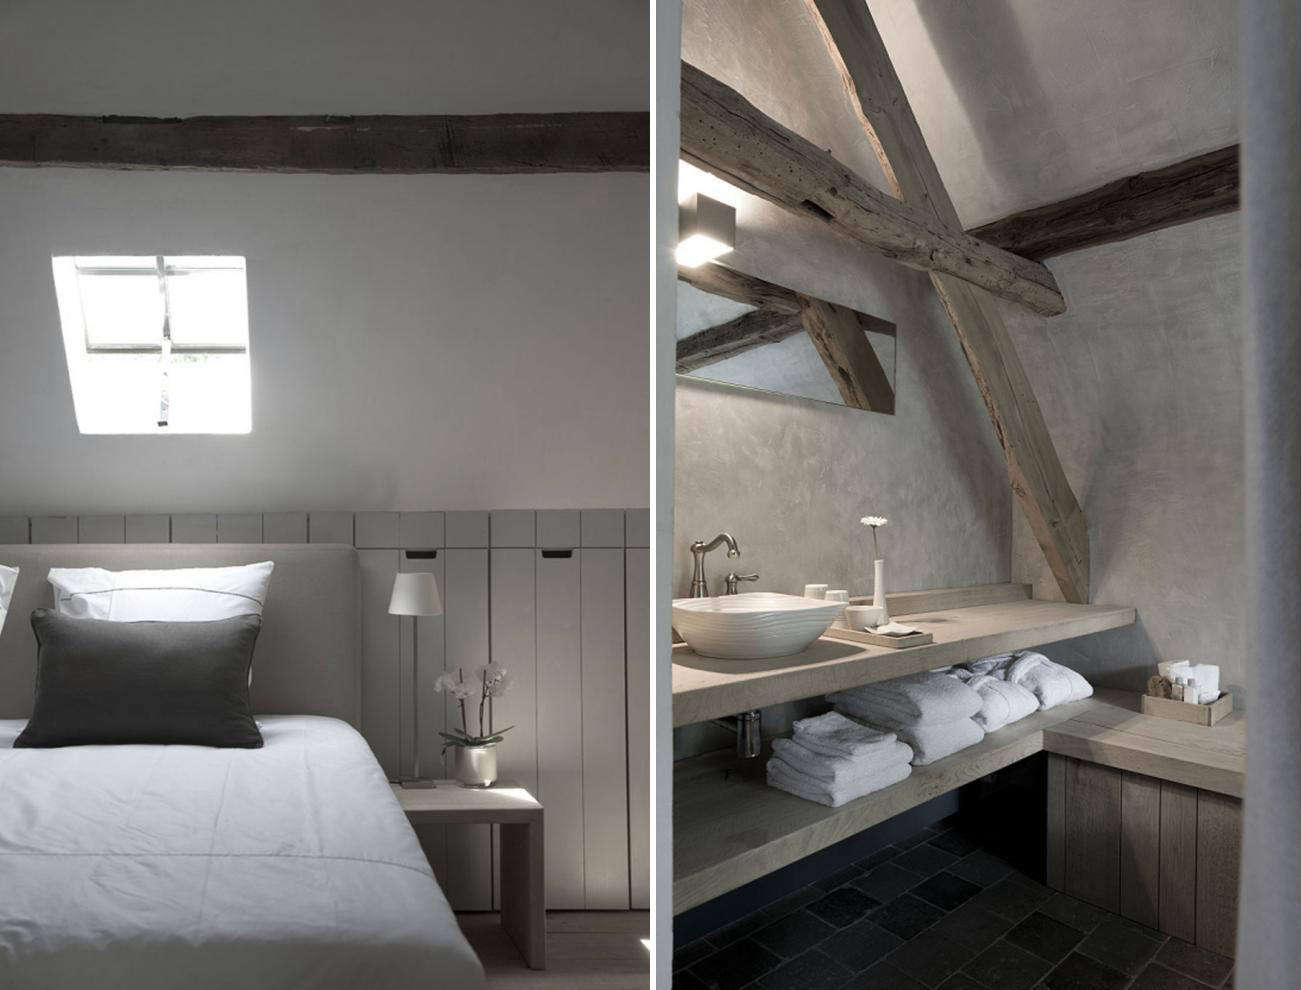 Above, L to R: In an attic bedroom, Cooreman built wood-paneled cabinets into the walls under the rafters. In the bathroom, a modern industrial faucet contrasts with a hand-thrown porcelain basin by ceramist Anja Meeusen.